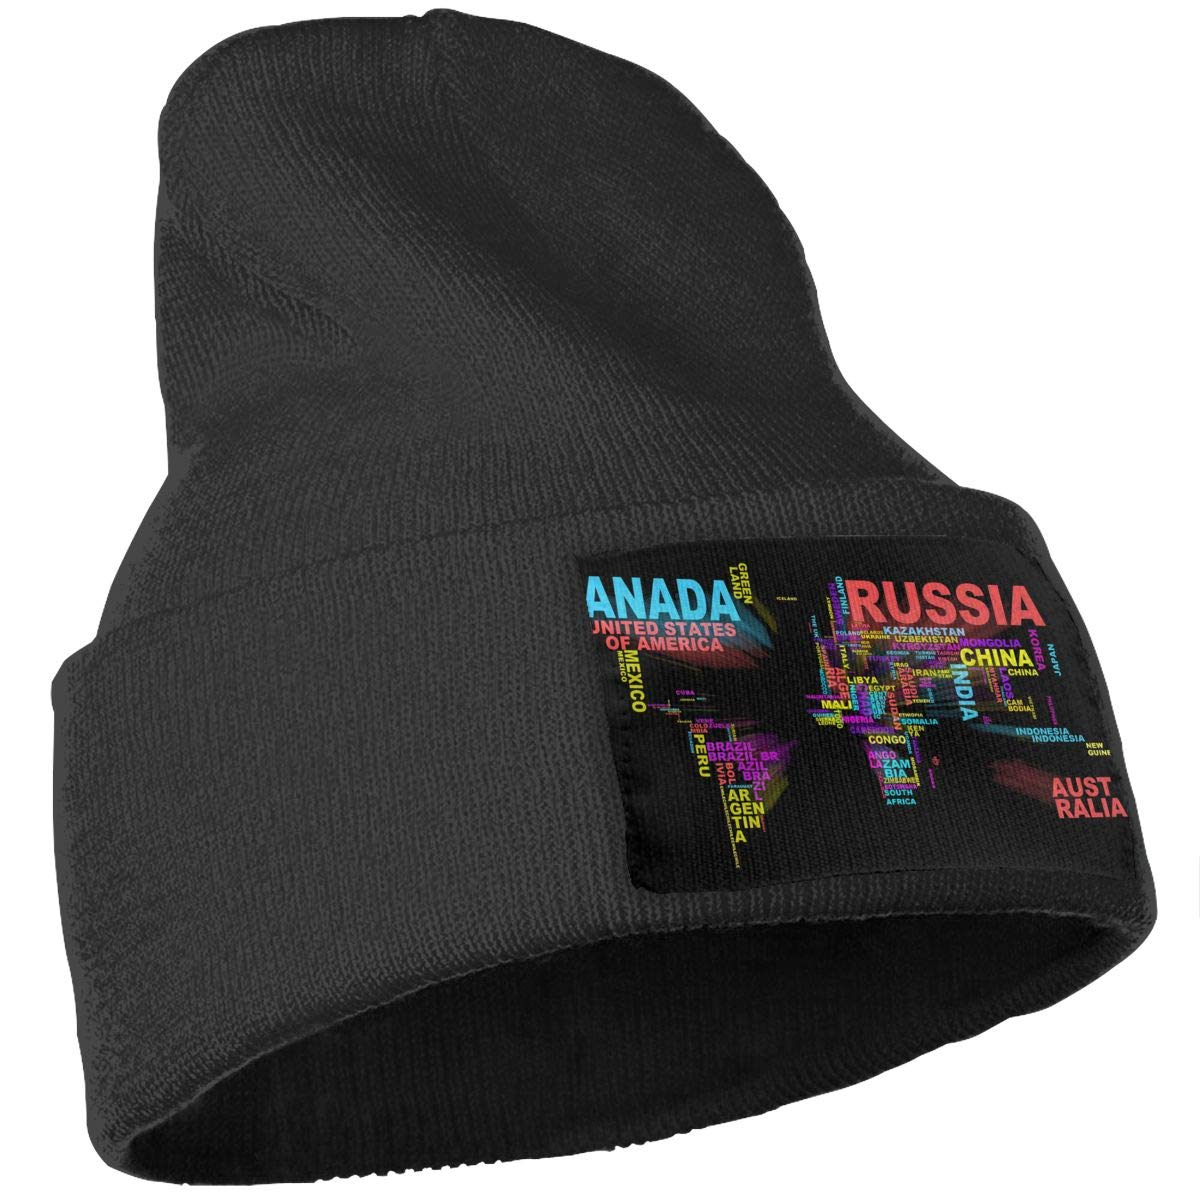 JimHappy Map of Letters Hat for Men and Women Winter Warm Hats Knit Slouchy Thick Skull Cap Black